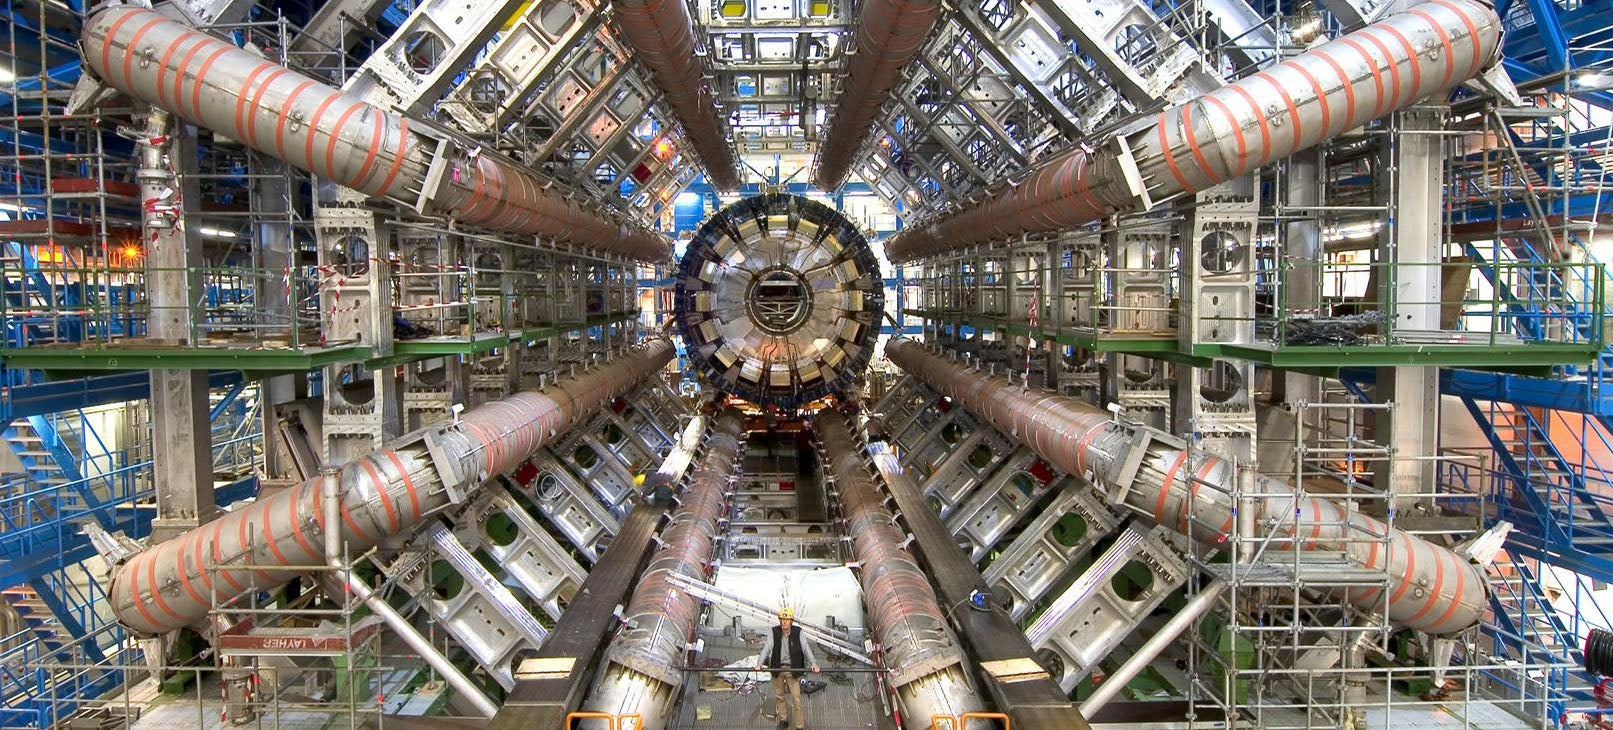 360 Video of the LHC Is an Amazing Reminder of How Big the Damn Thing Is